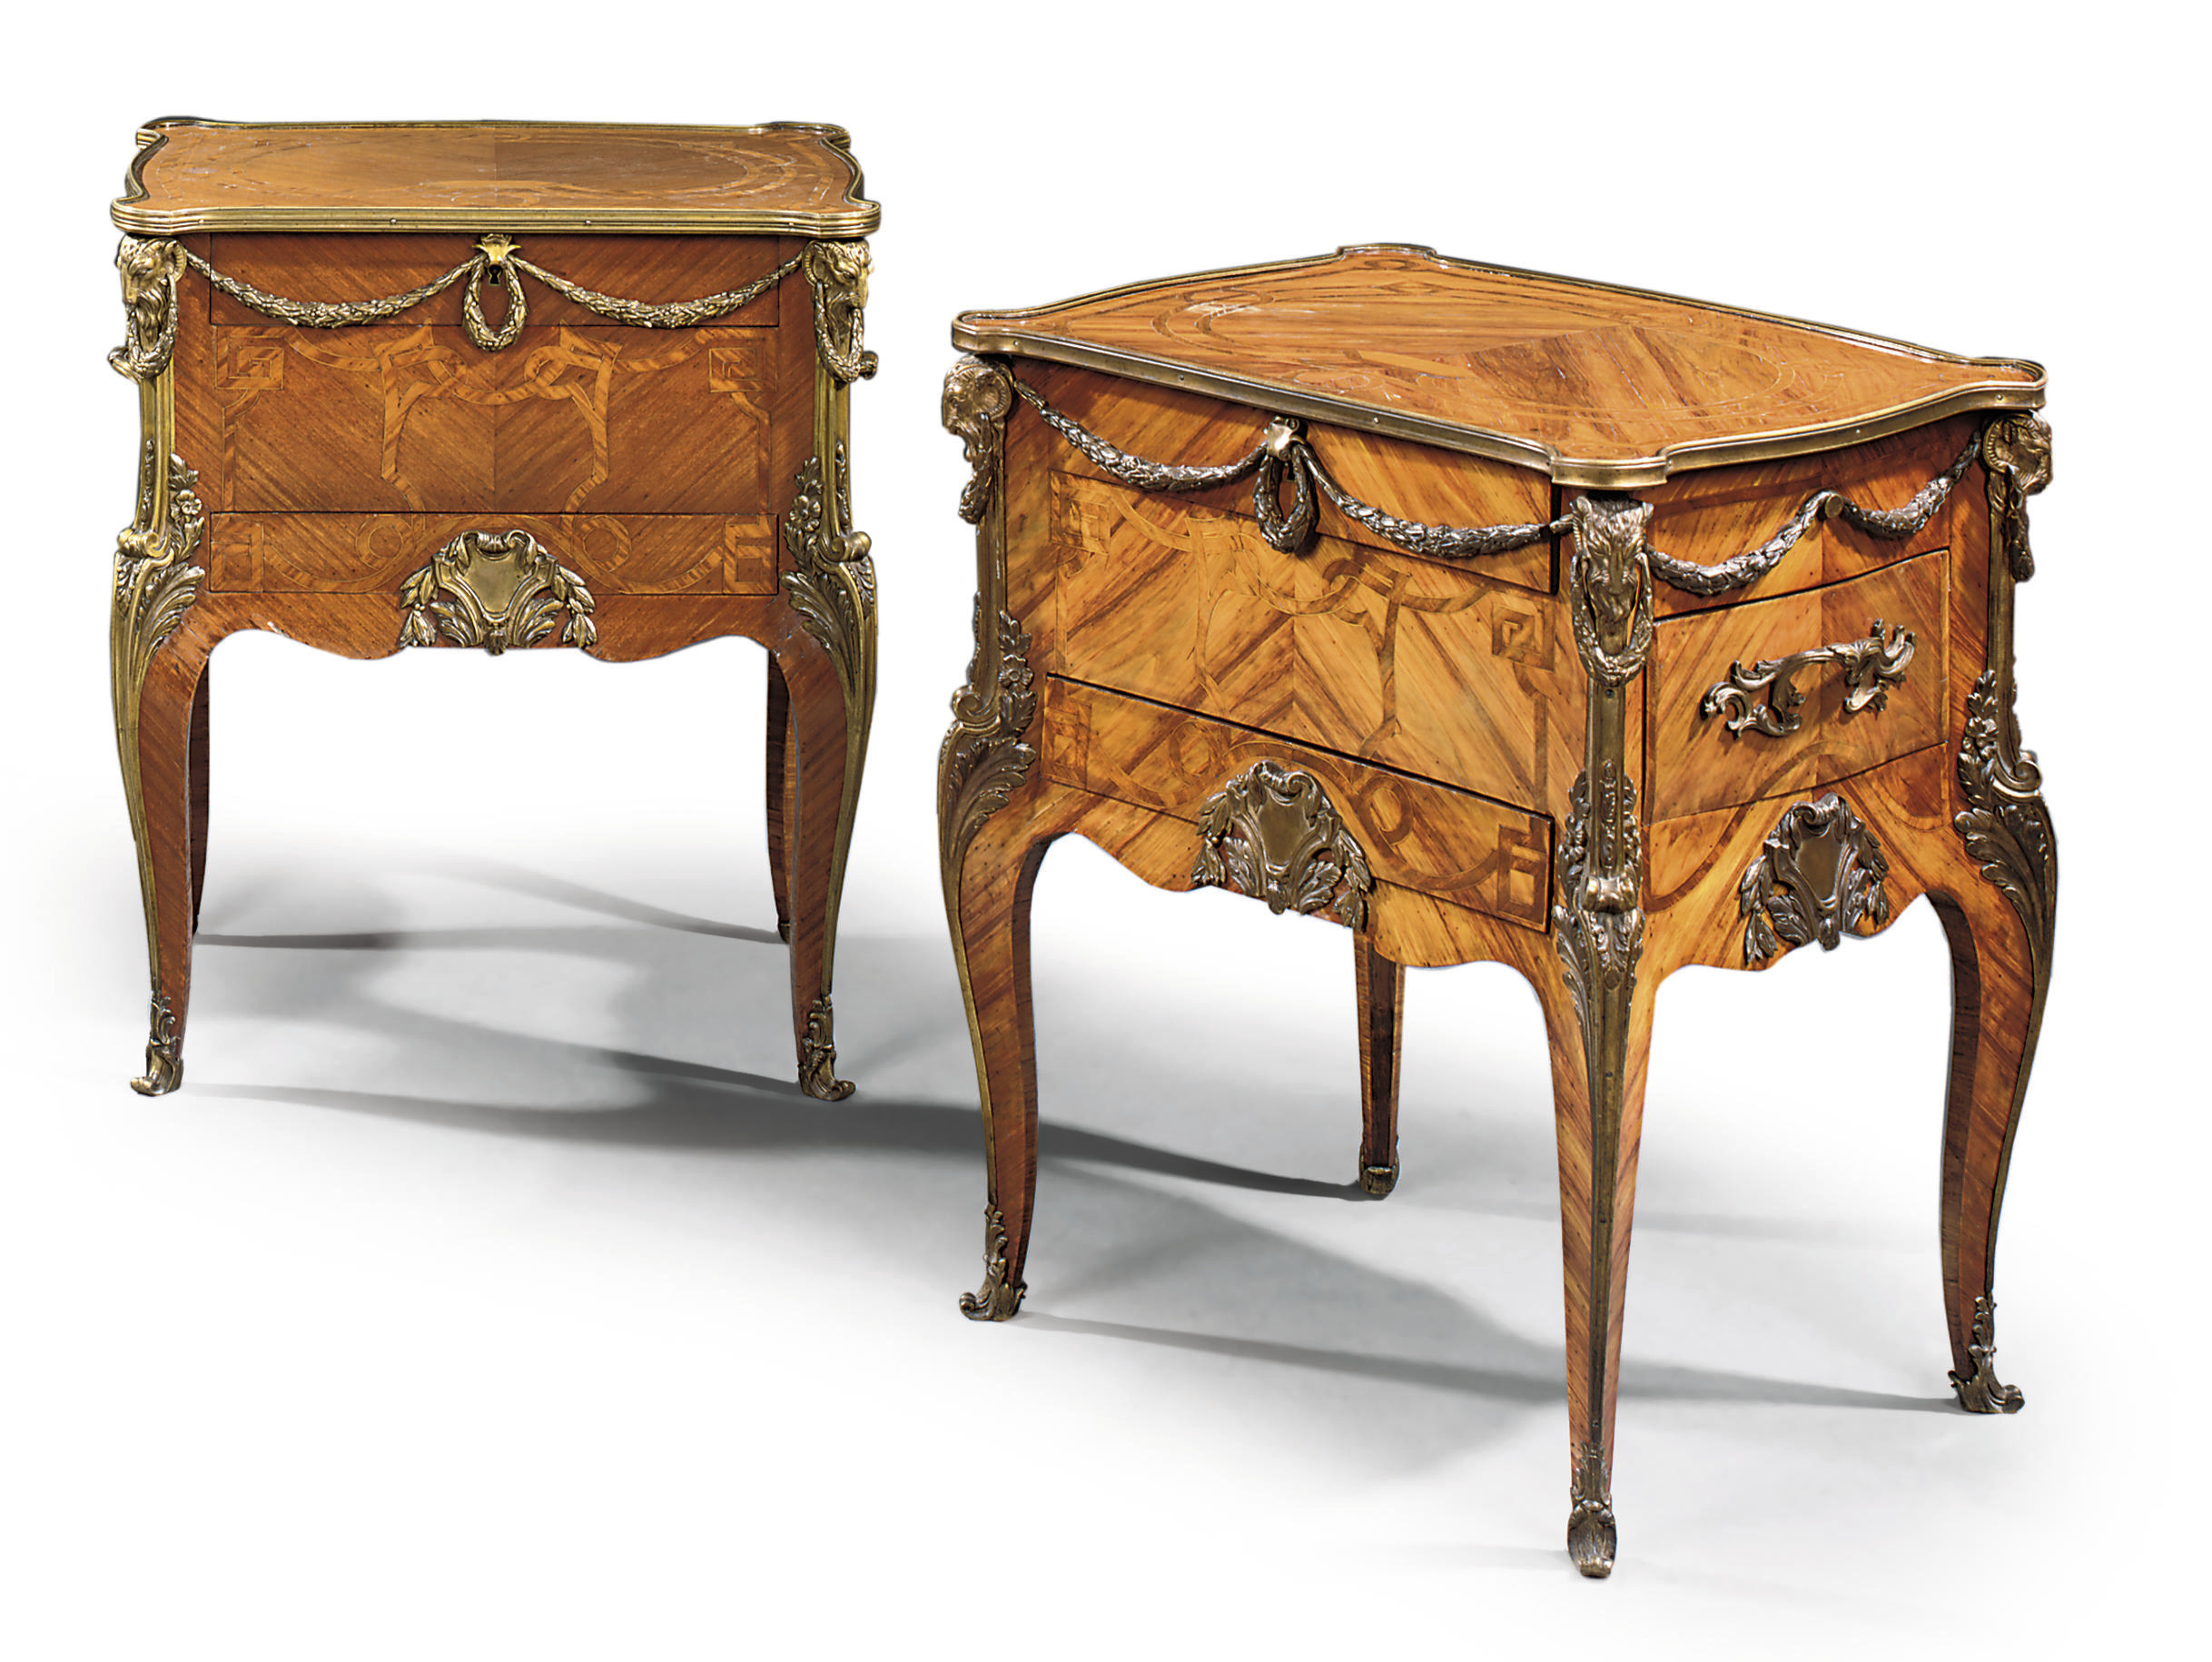 A PAIR OF ORMOLU-MOUNTED MARQUETRY MAHOGANY AND TULIPWOOD TABLES A ECRIRE